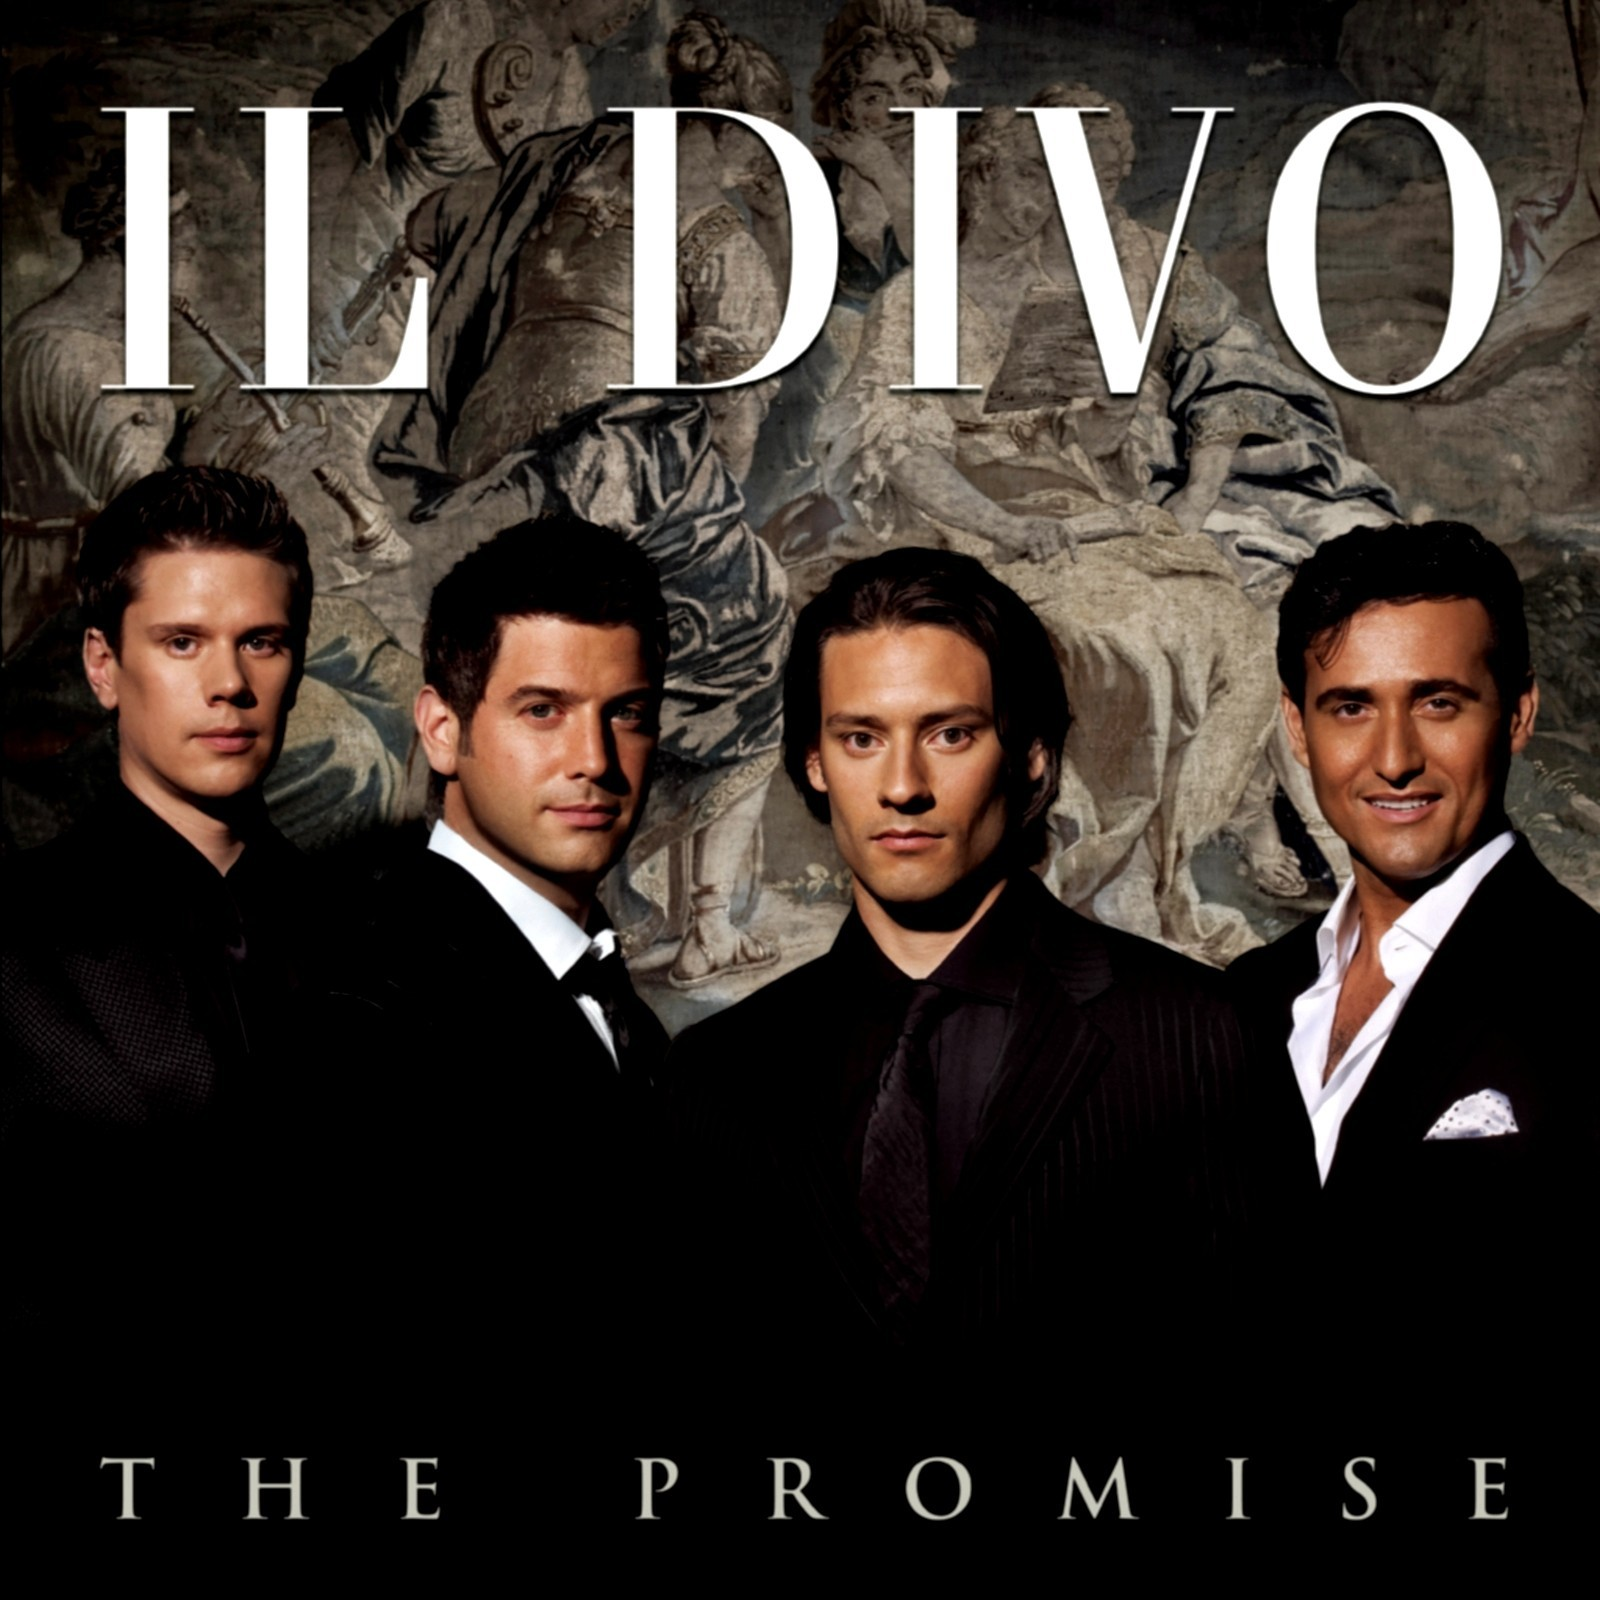 Il divo the promise 2008 mp3 torrent com by dinho for Il divo amazing grace mp3